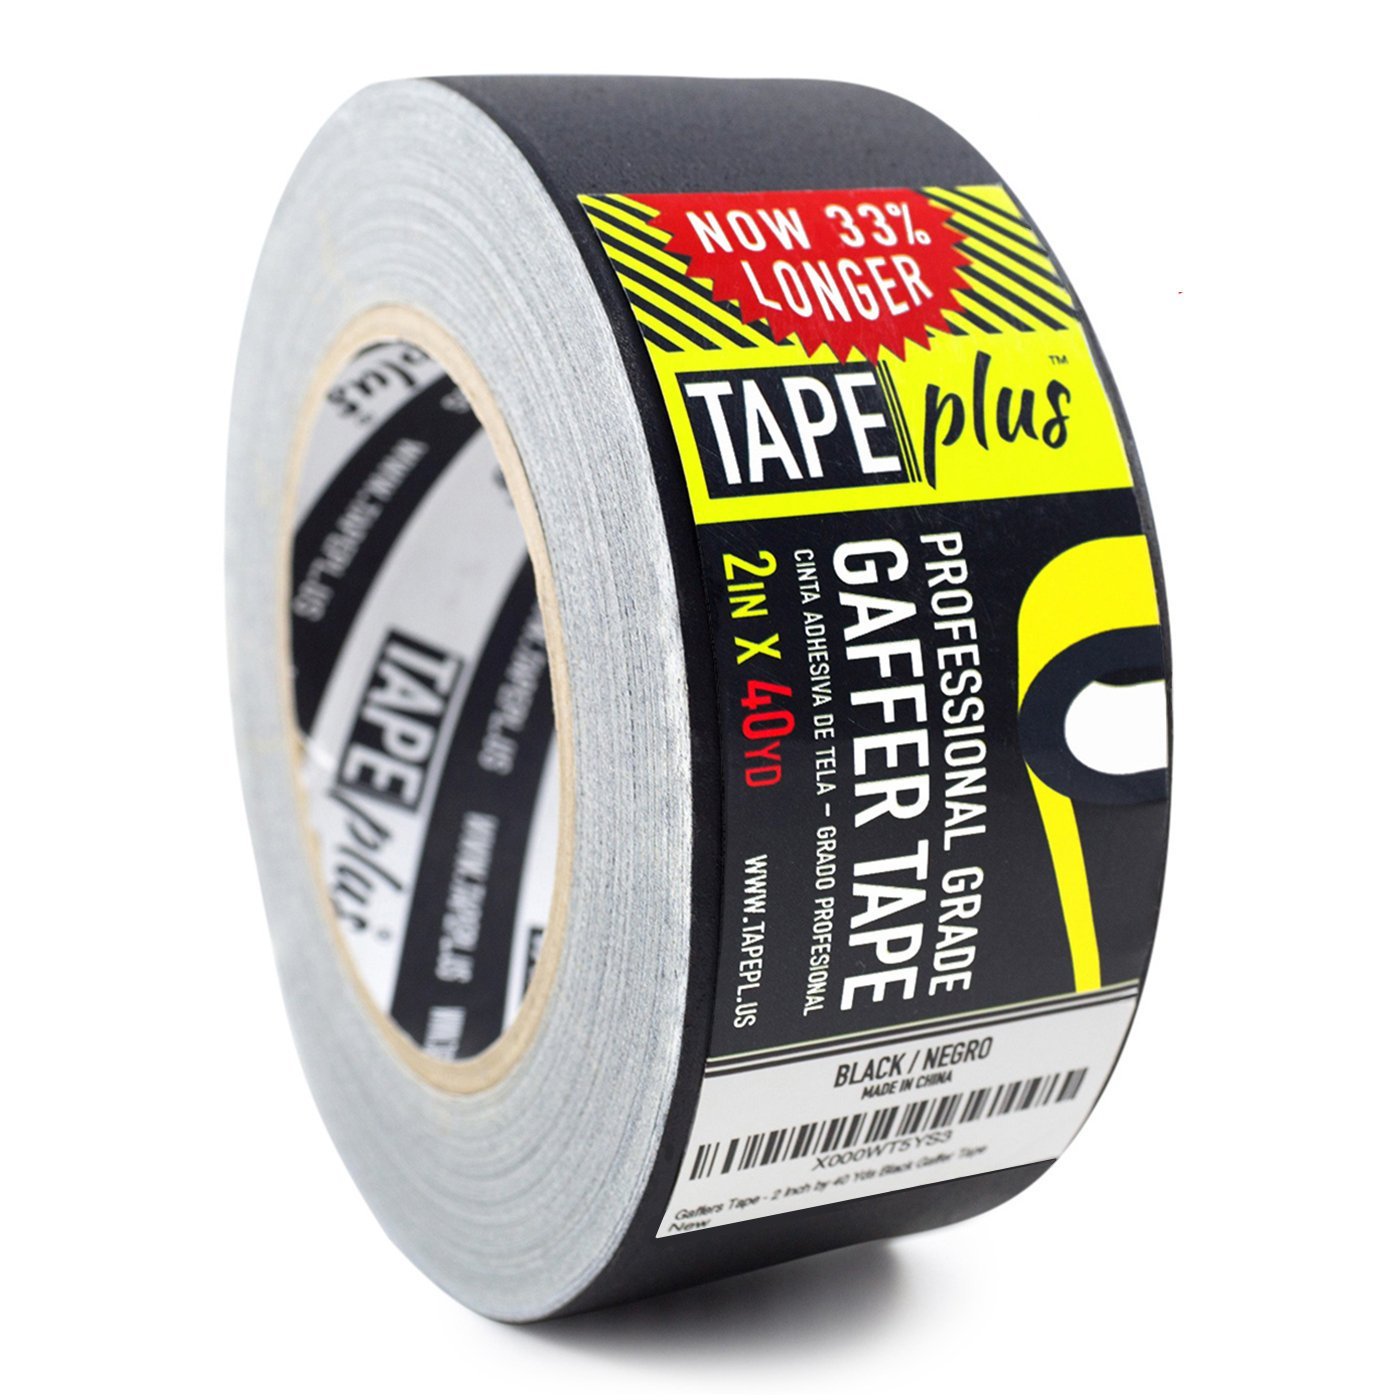 Gaffers Tape - 2 Inch by 40 Yards in Black - Get 33% More! High End Professional Grade - Gaffer Tape is the Perfect Alternative to Duct Tape, Electrical Tape, and other Adhesives by TapePlus